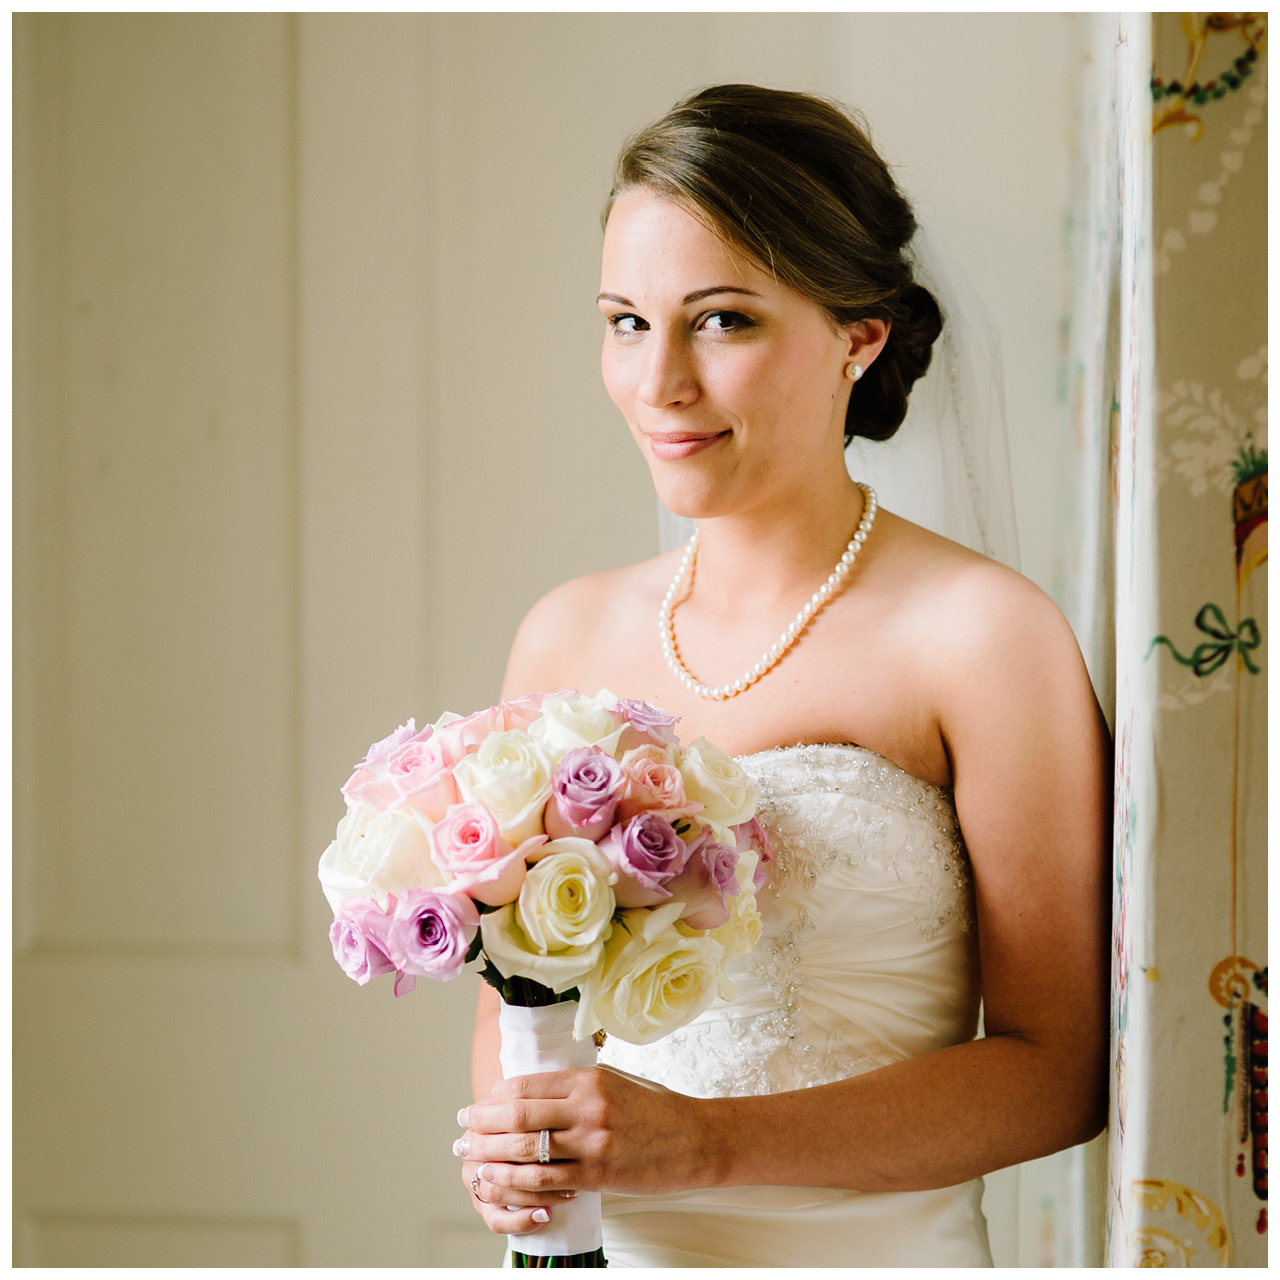 Whitehall house wedding photography by Adam Padgett (6)